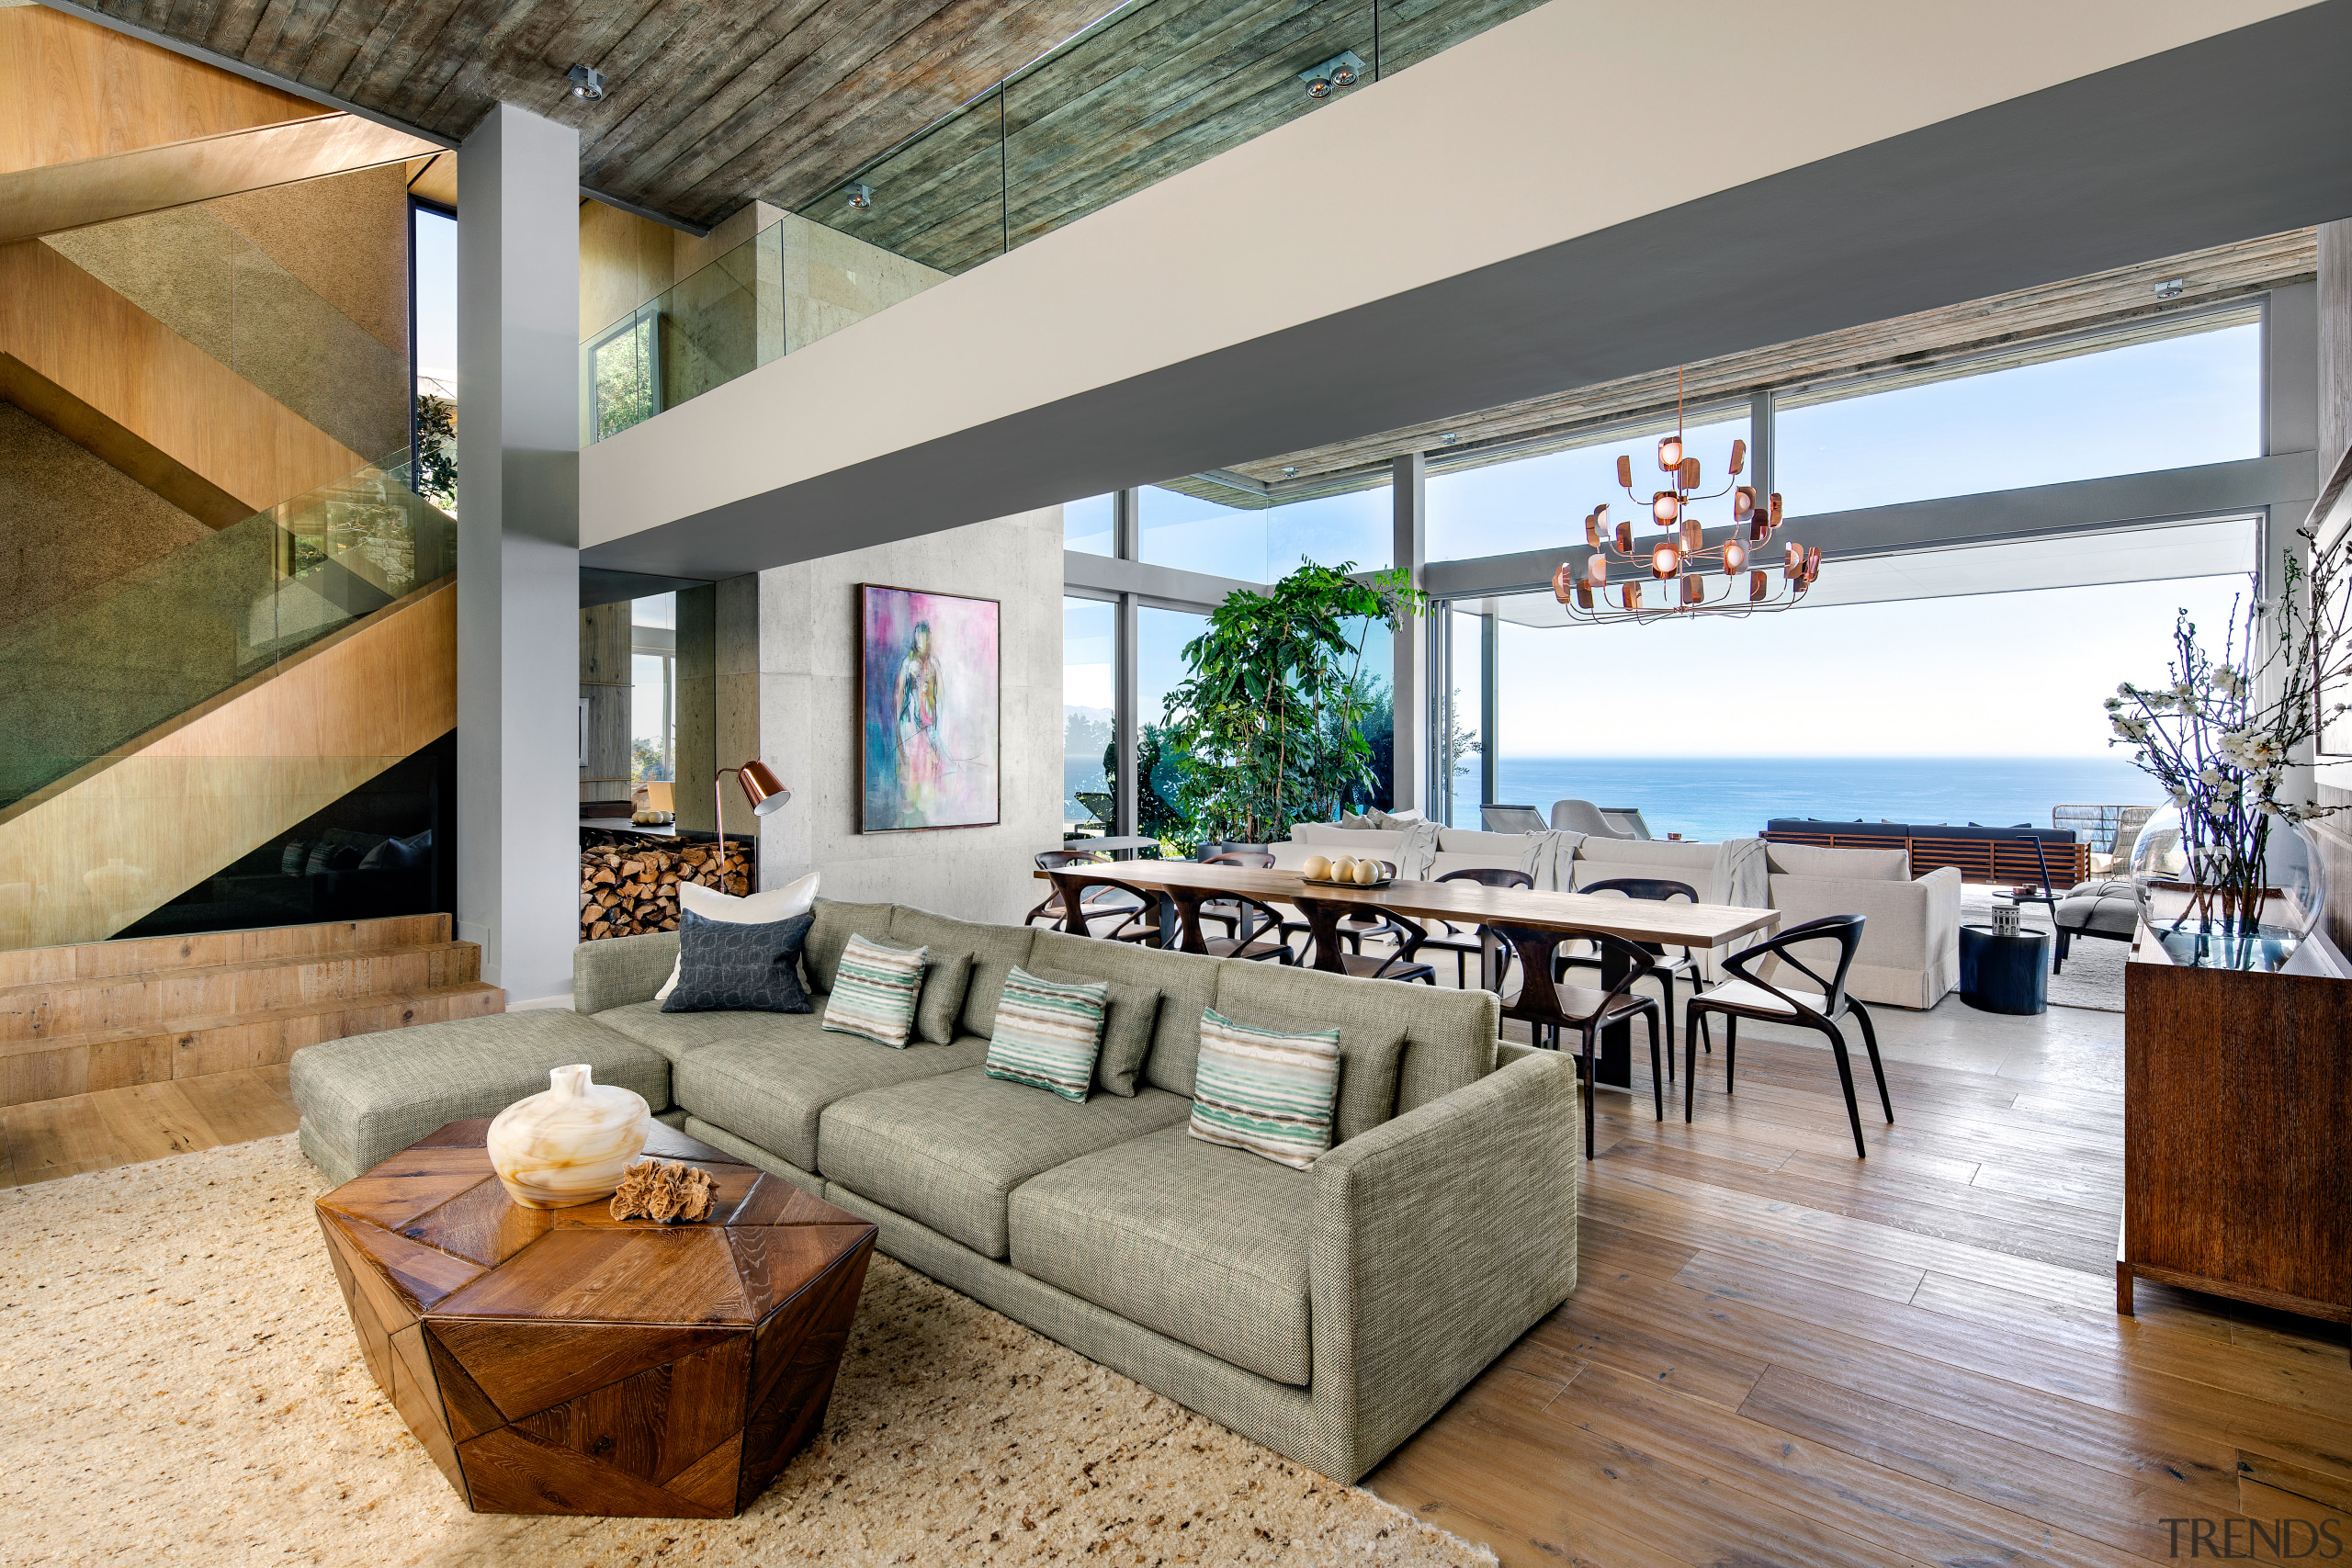 The living level is set back considerably to apartment, architecture, building, ceiling, coffee table, couch, estate, floor, flooring, furniture, hardwood, home, house, interior design, laminate flooring, living room, loft, property, real estate, roof, room, table, wall, wood, wood flooring, gray